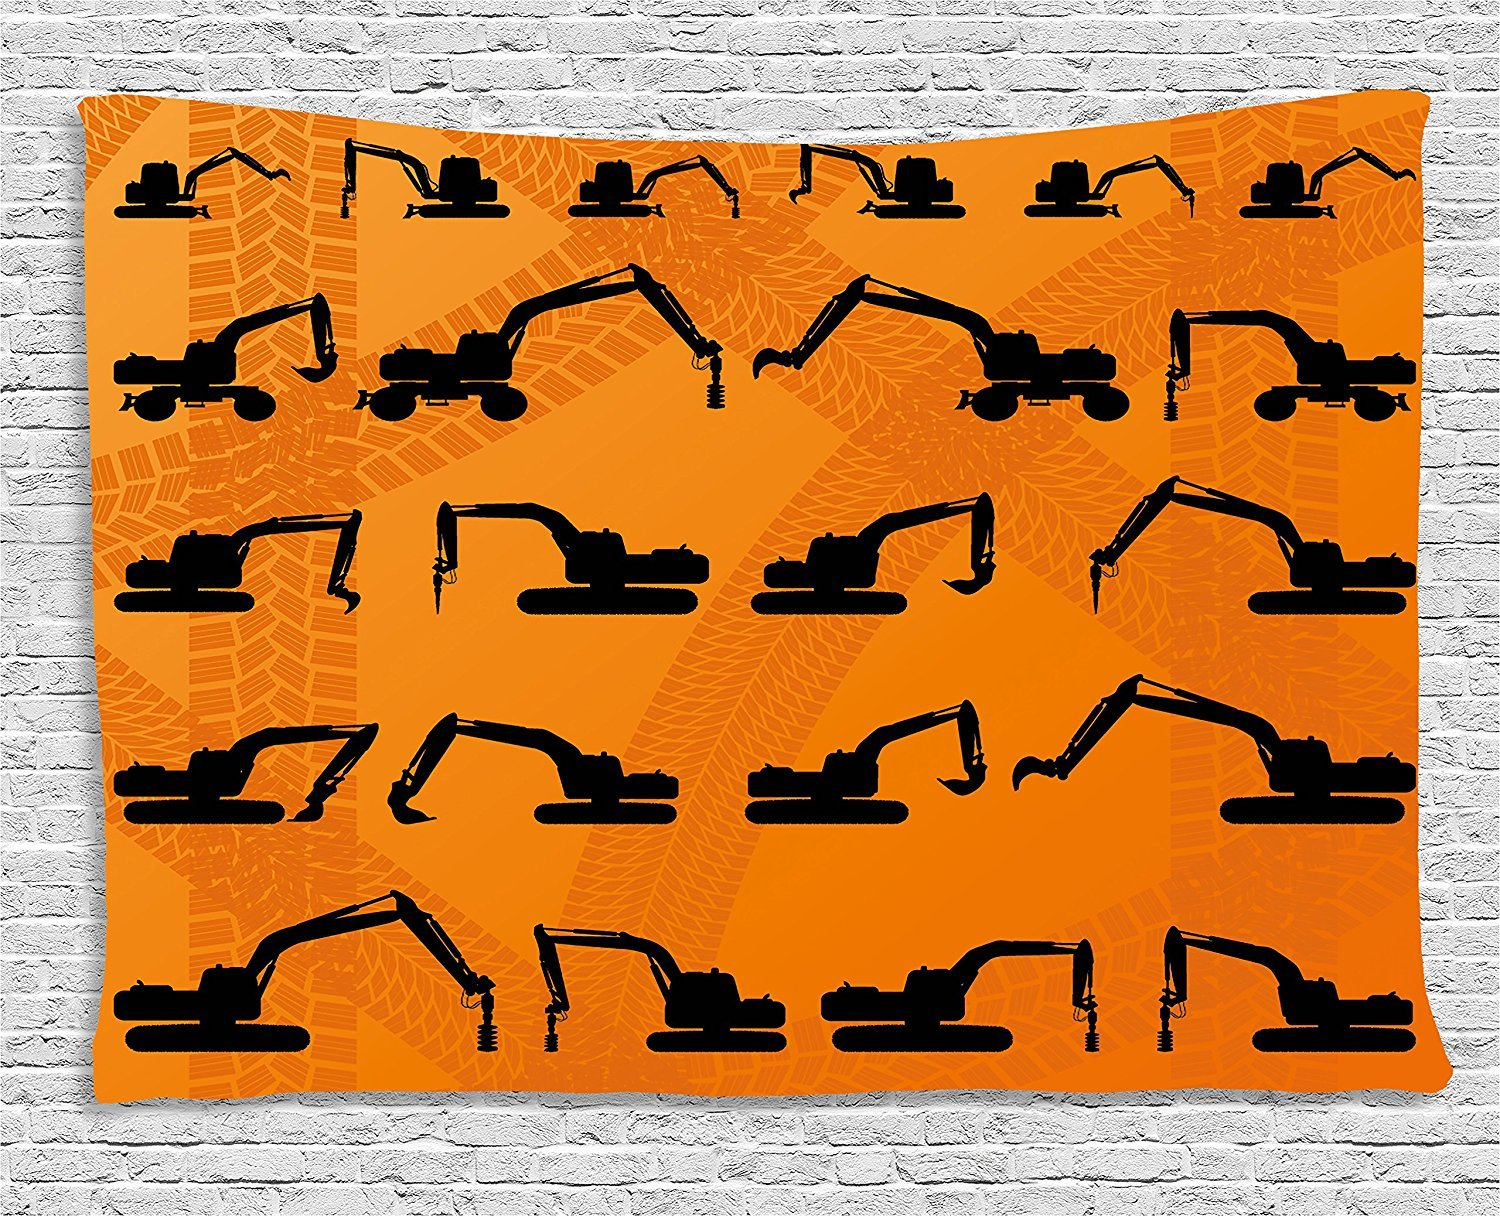 Construction Tapestry, Excavator Black Silhouettes Tire Traces Track Machinery Industry Technology, Wall Hanging for Bedroom Living Room Dorm, 80 W X 60 L Inches, Orange Black